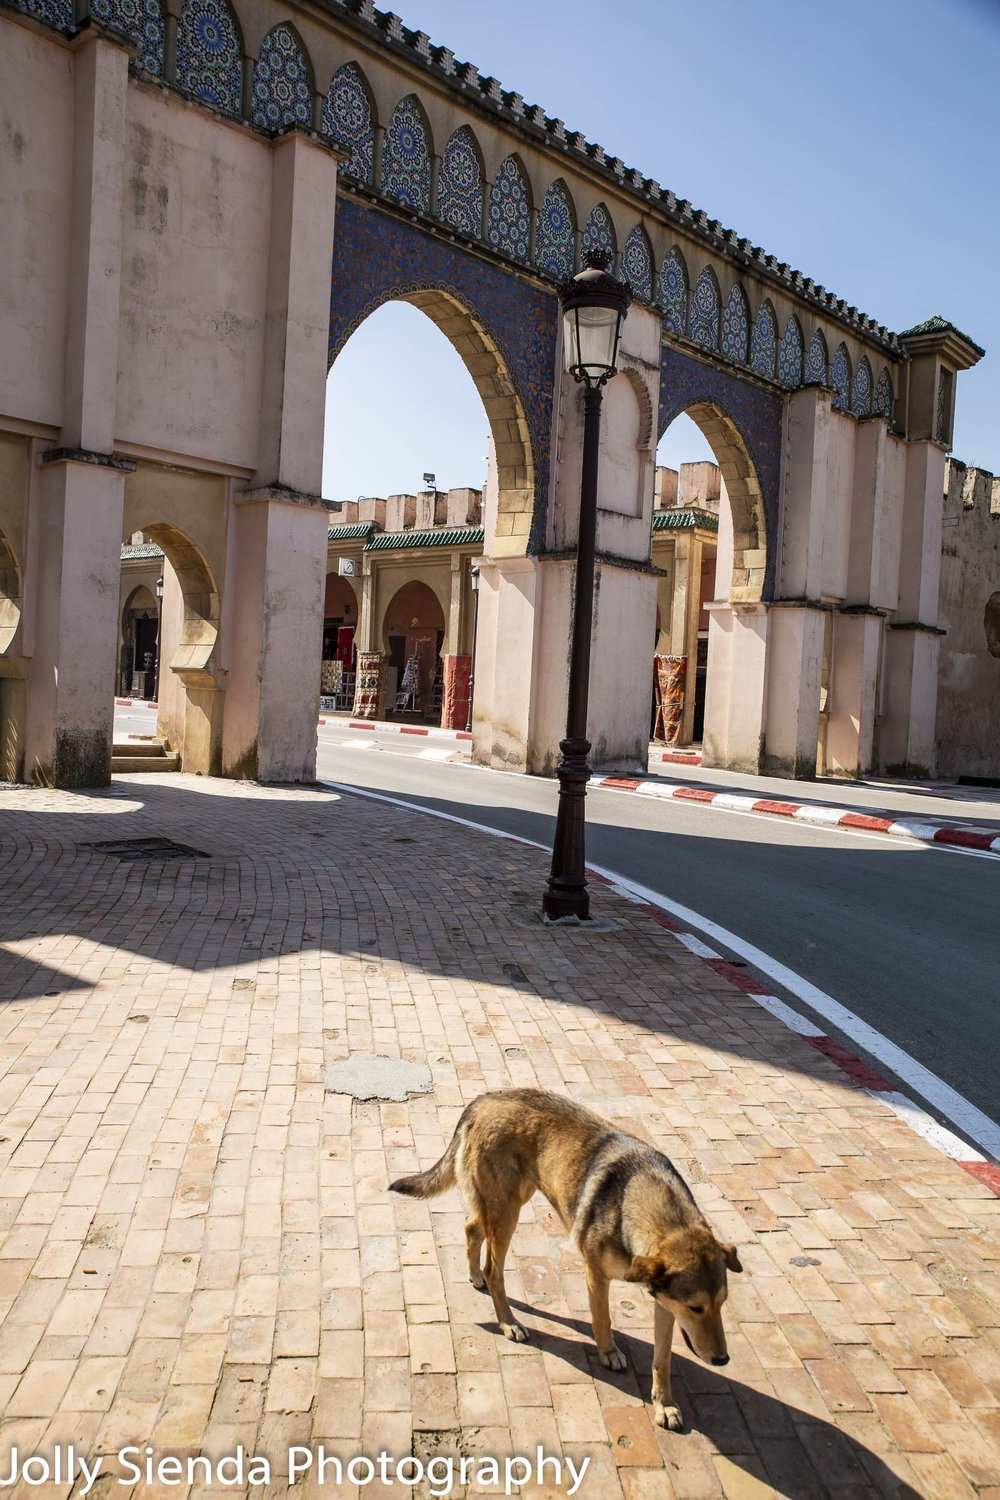 Meknes Imperial Gate and a dog